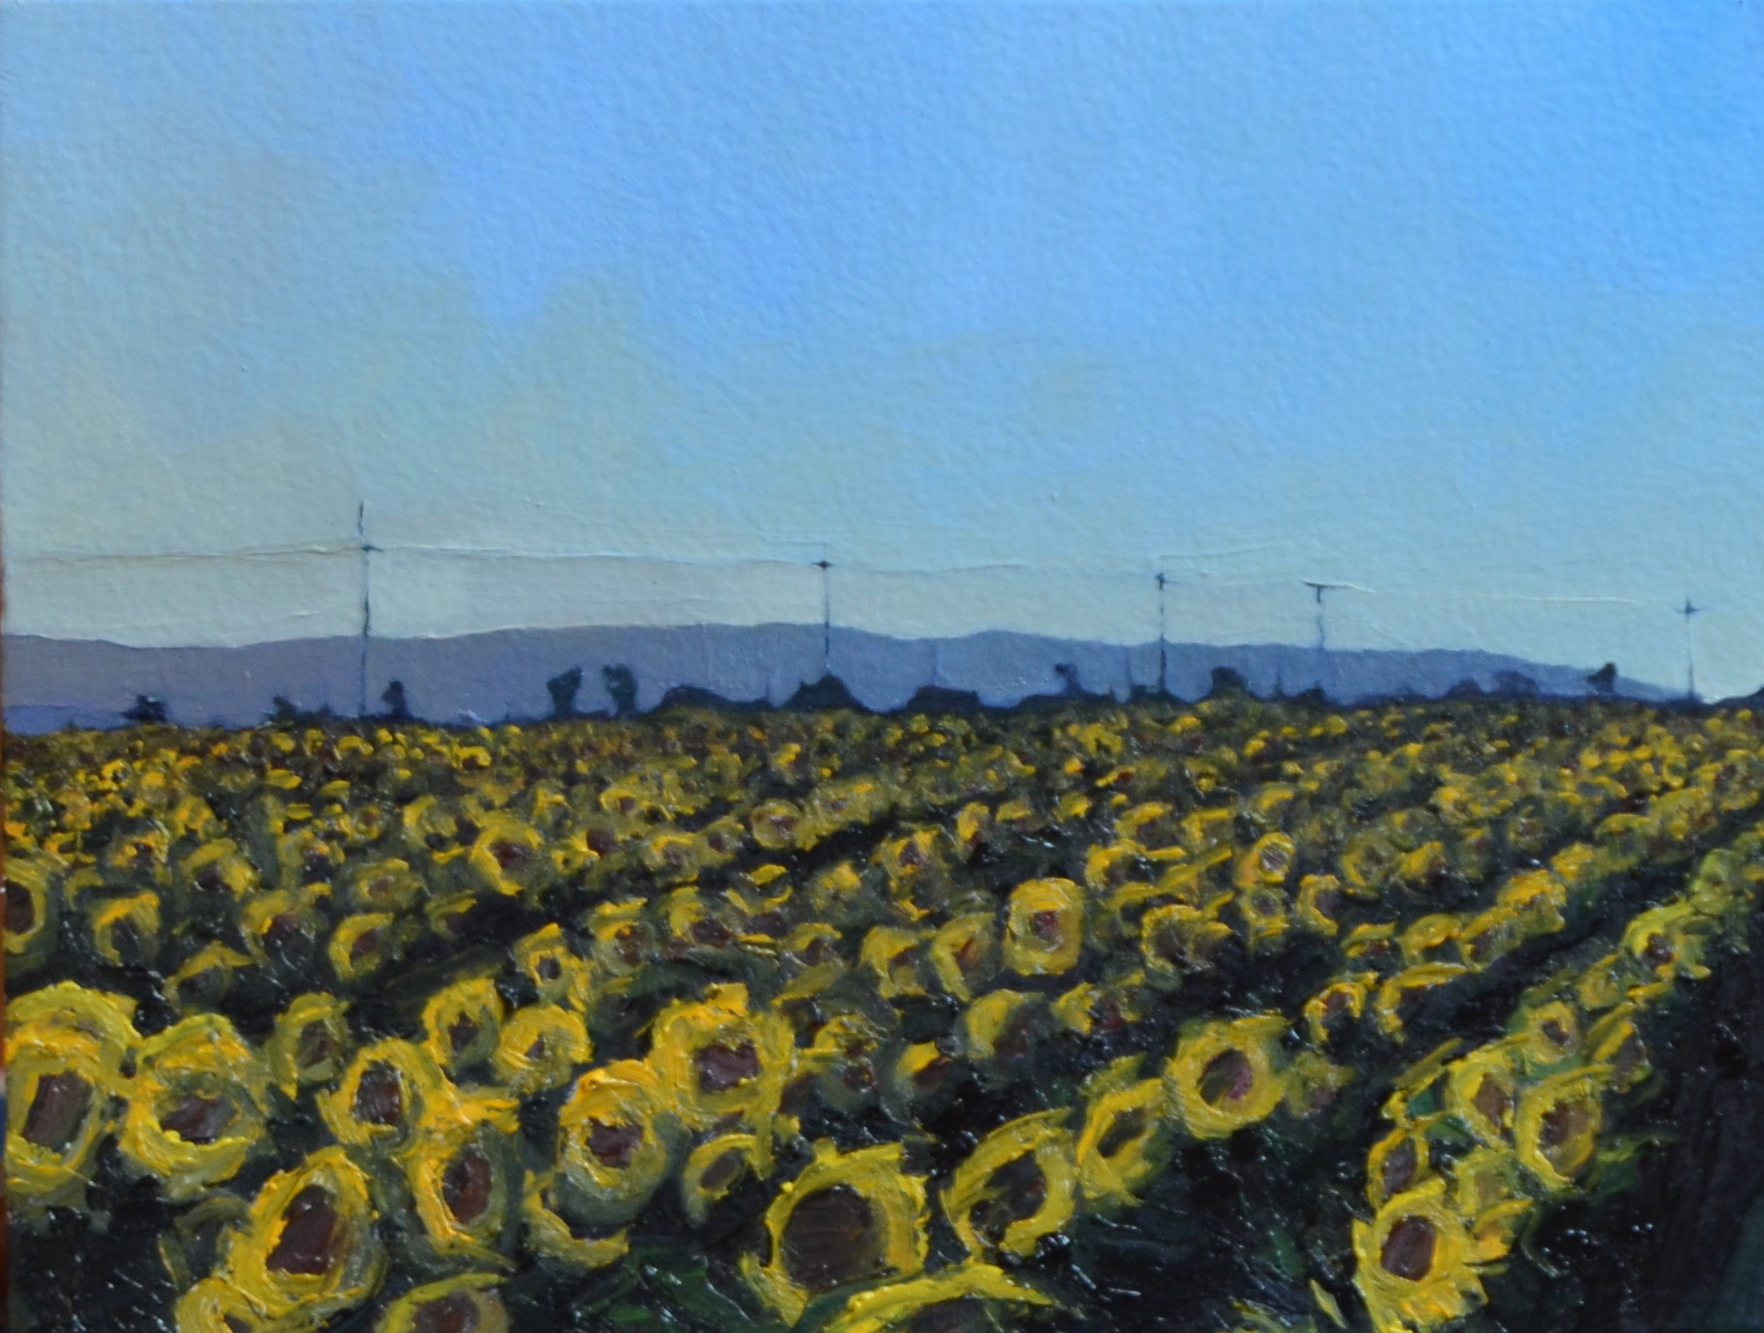 Sunflowers, Rows